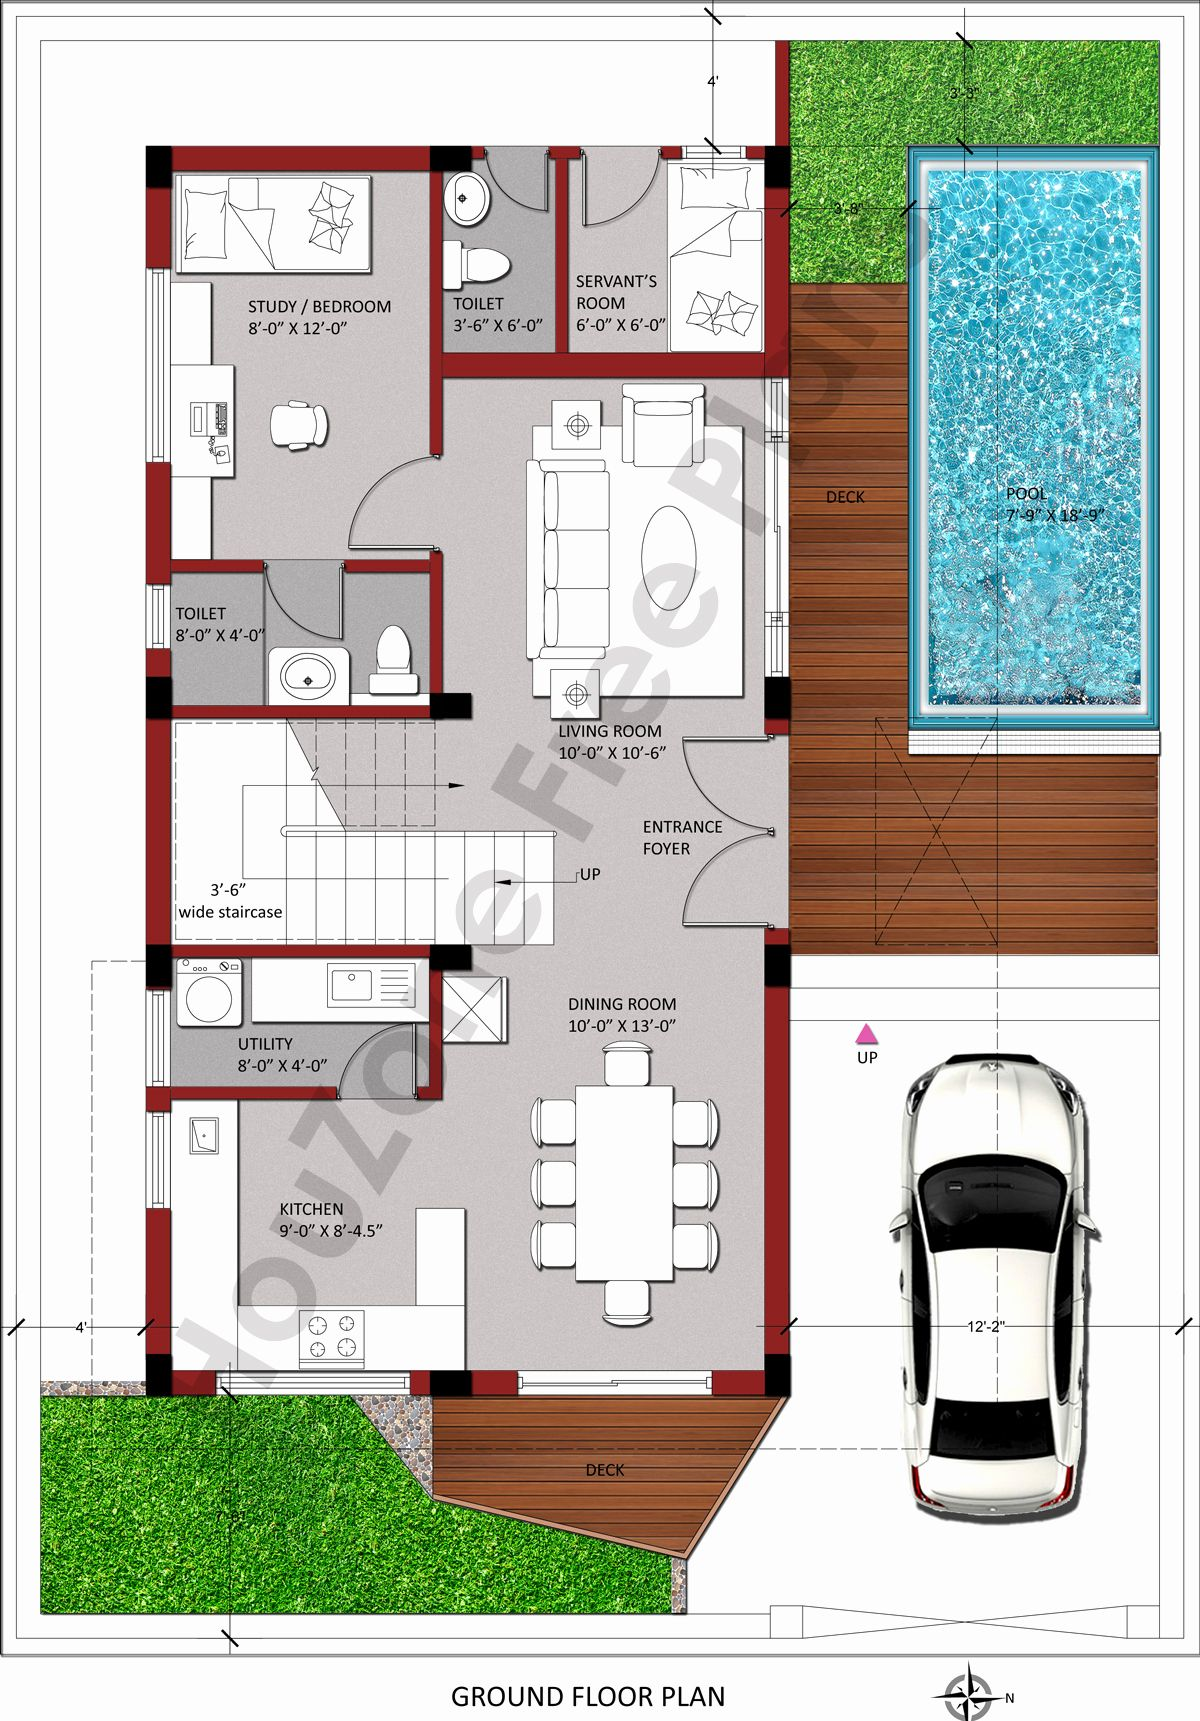 Duplex House Plans In 200 Sq Yards East Facing Beautiful Ground Floor Plan For 200 Sq Yards Of Plo Duplex House Plans Pool House Plans Luxury House Floor Plans Small backyard house plans